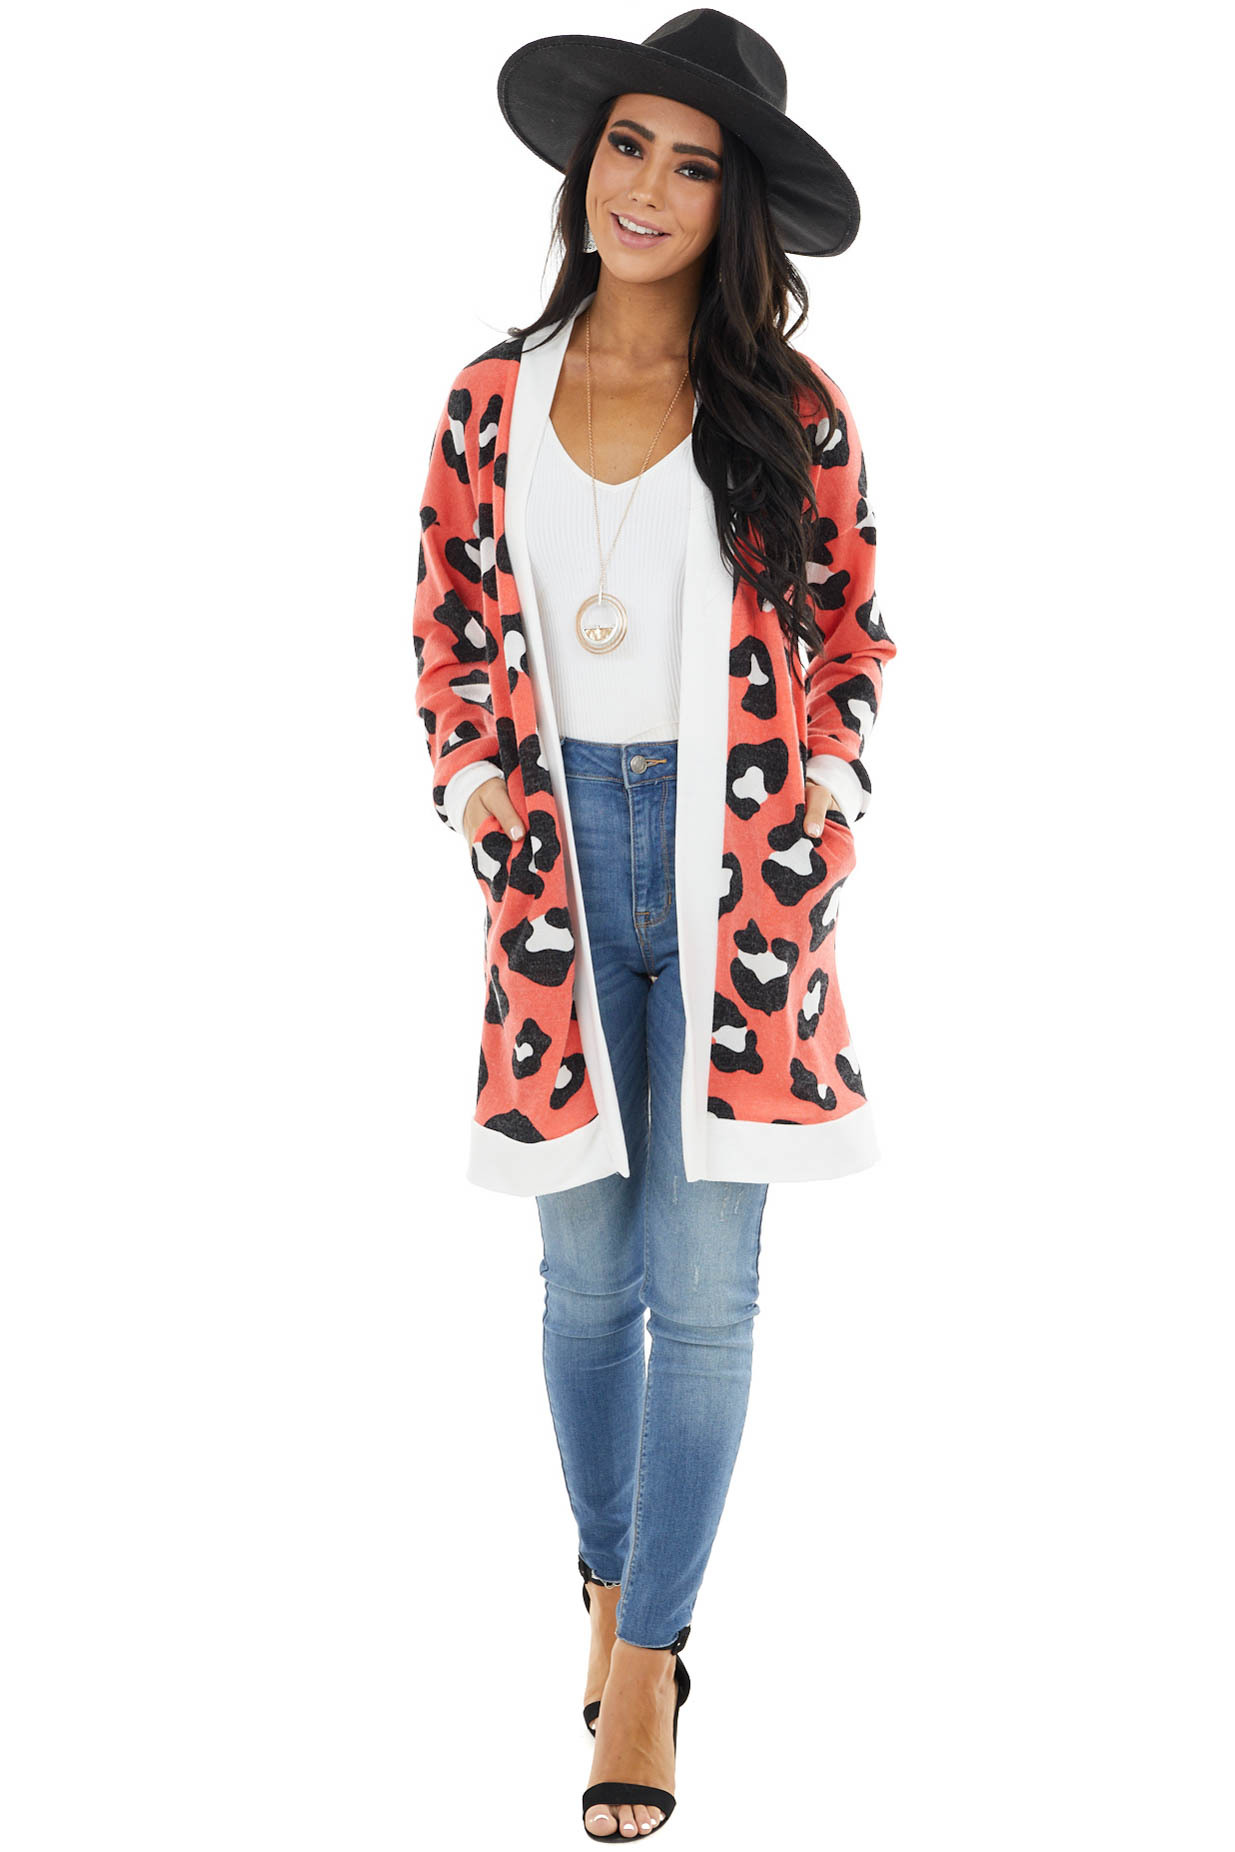 Bright Coral Leopard Print Cardigan with White Contrast